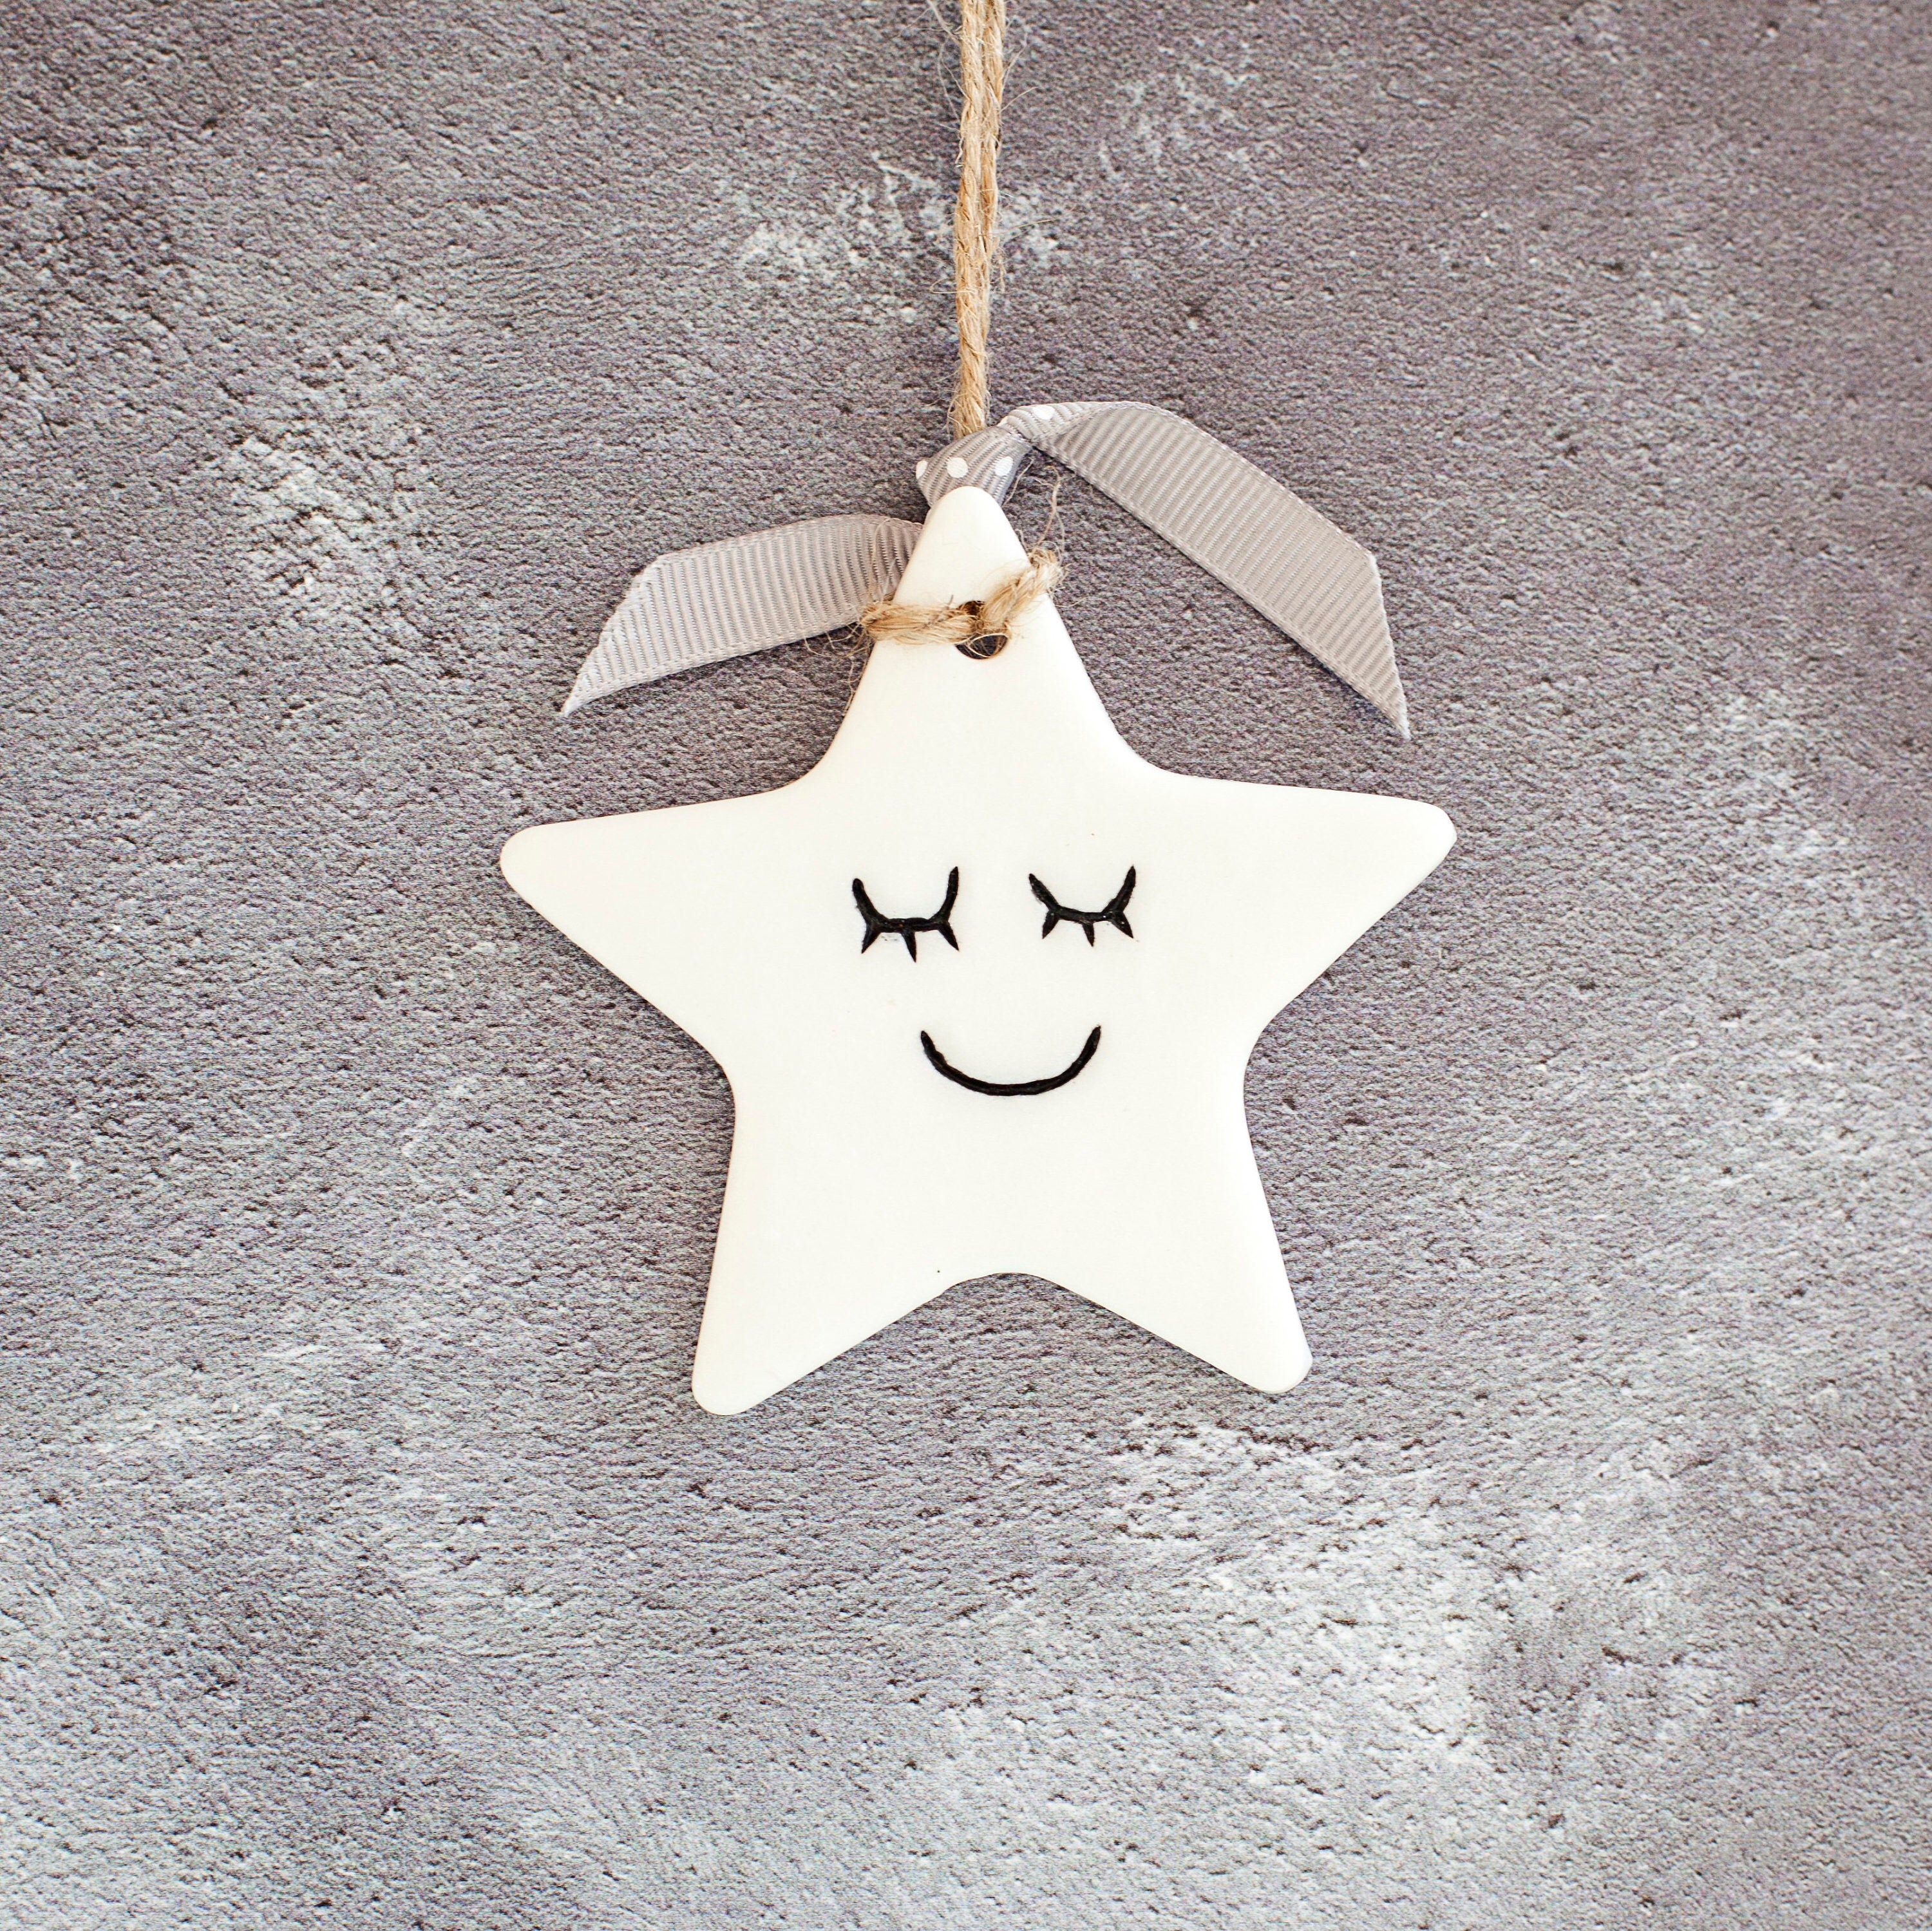 Handmade White Hanging Star Decoration Nursery Decor Ornament Etsy Clay Christmas Decorations Handmade Christmas Gifts From Children Handmade Christmas Gifts